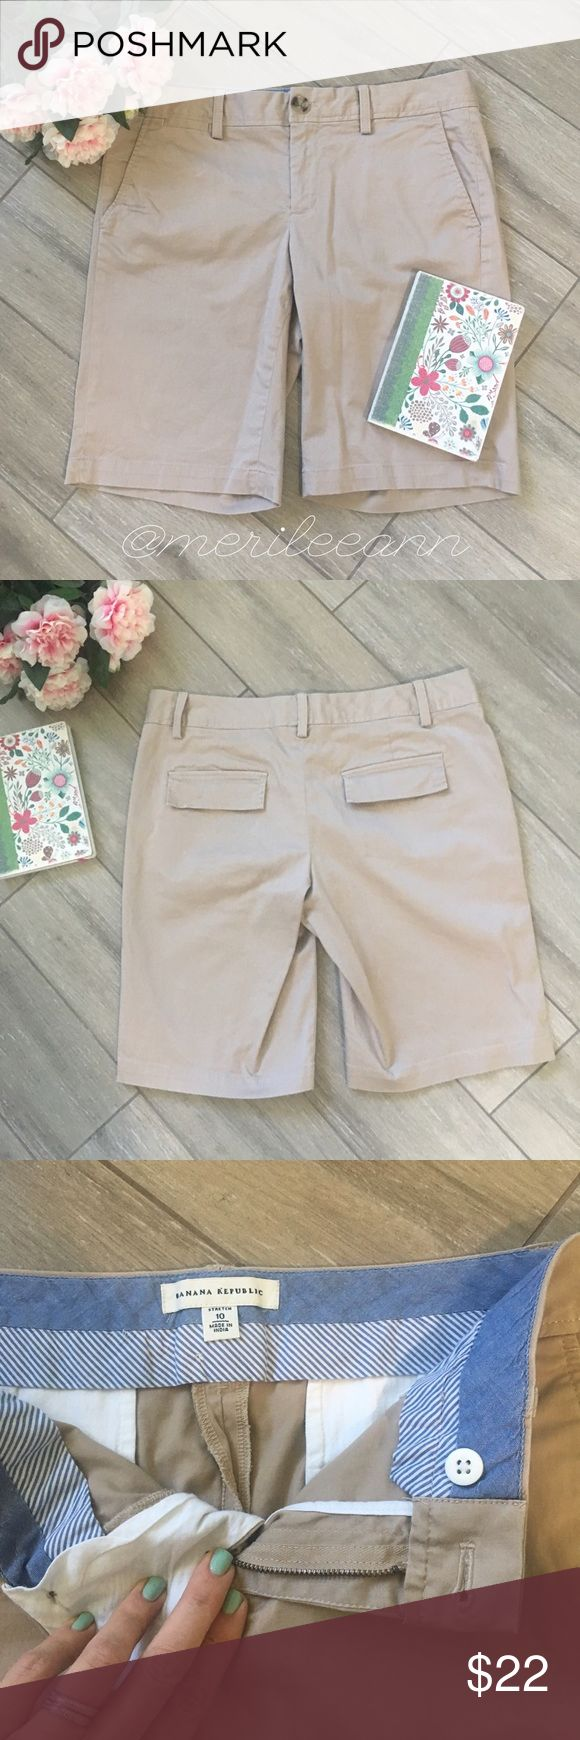 Banana Republic Bermuda Shorts These are BR's most popular Bermuda short. They have the perfect amount of stretch and they're so soft and comfy. Worn once. In pristine condition. Banana Republic Shorts Bermudas